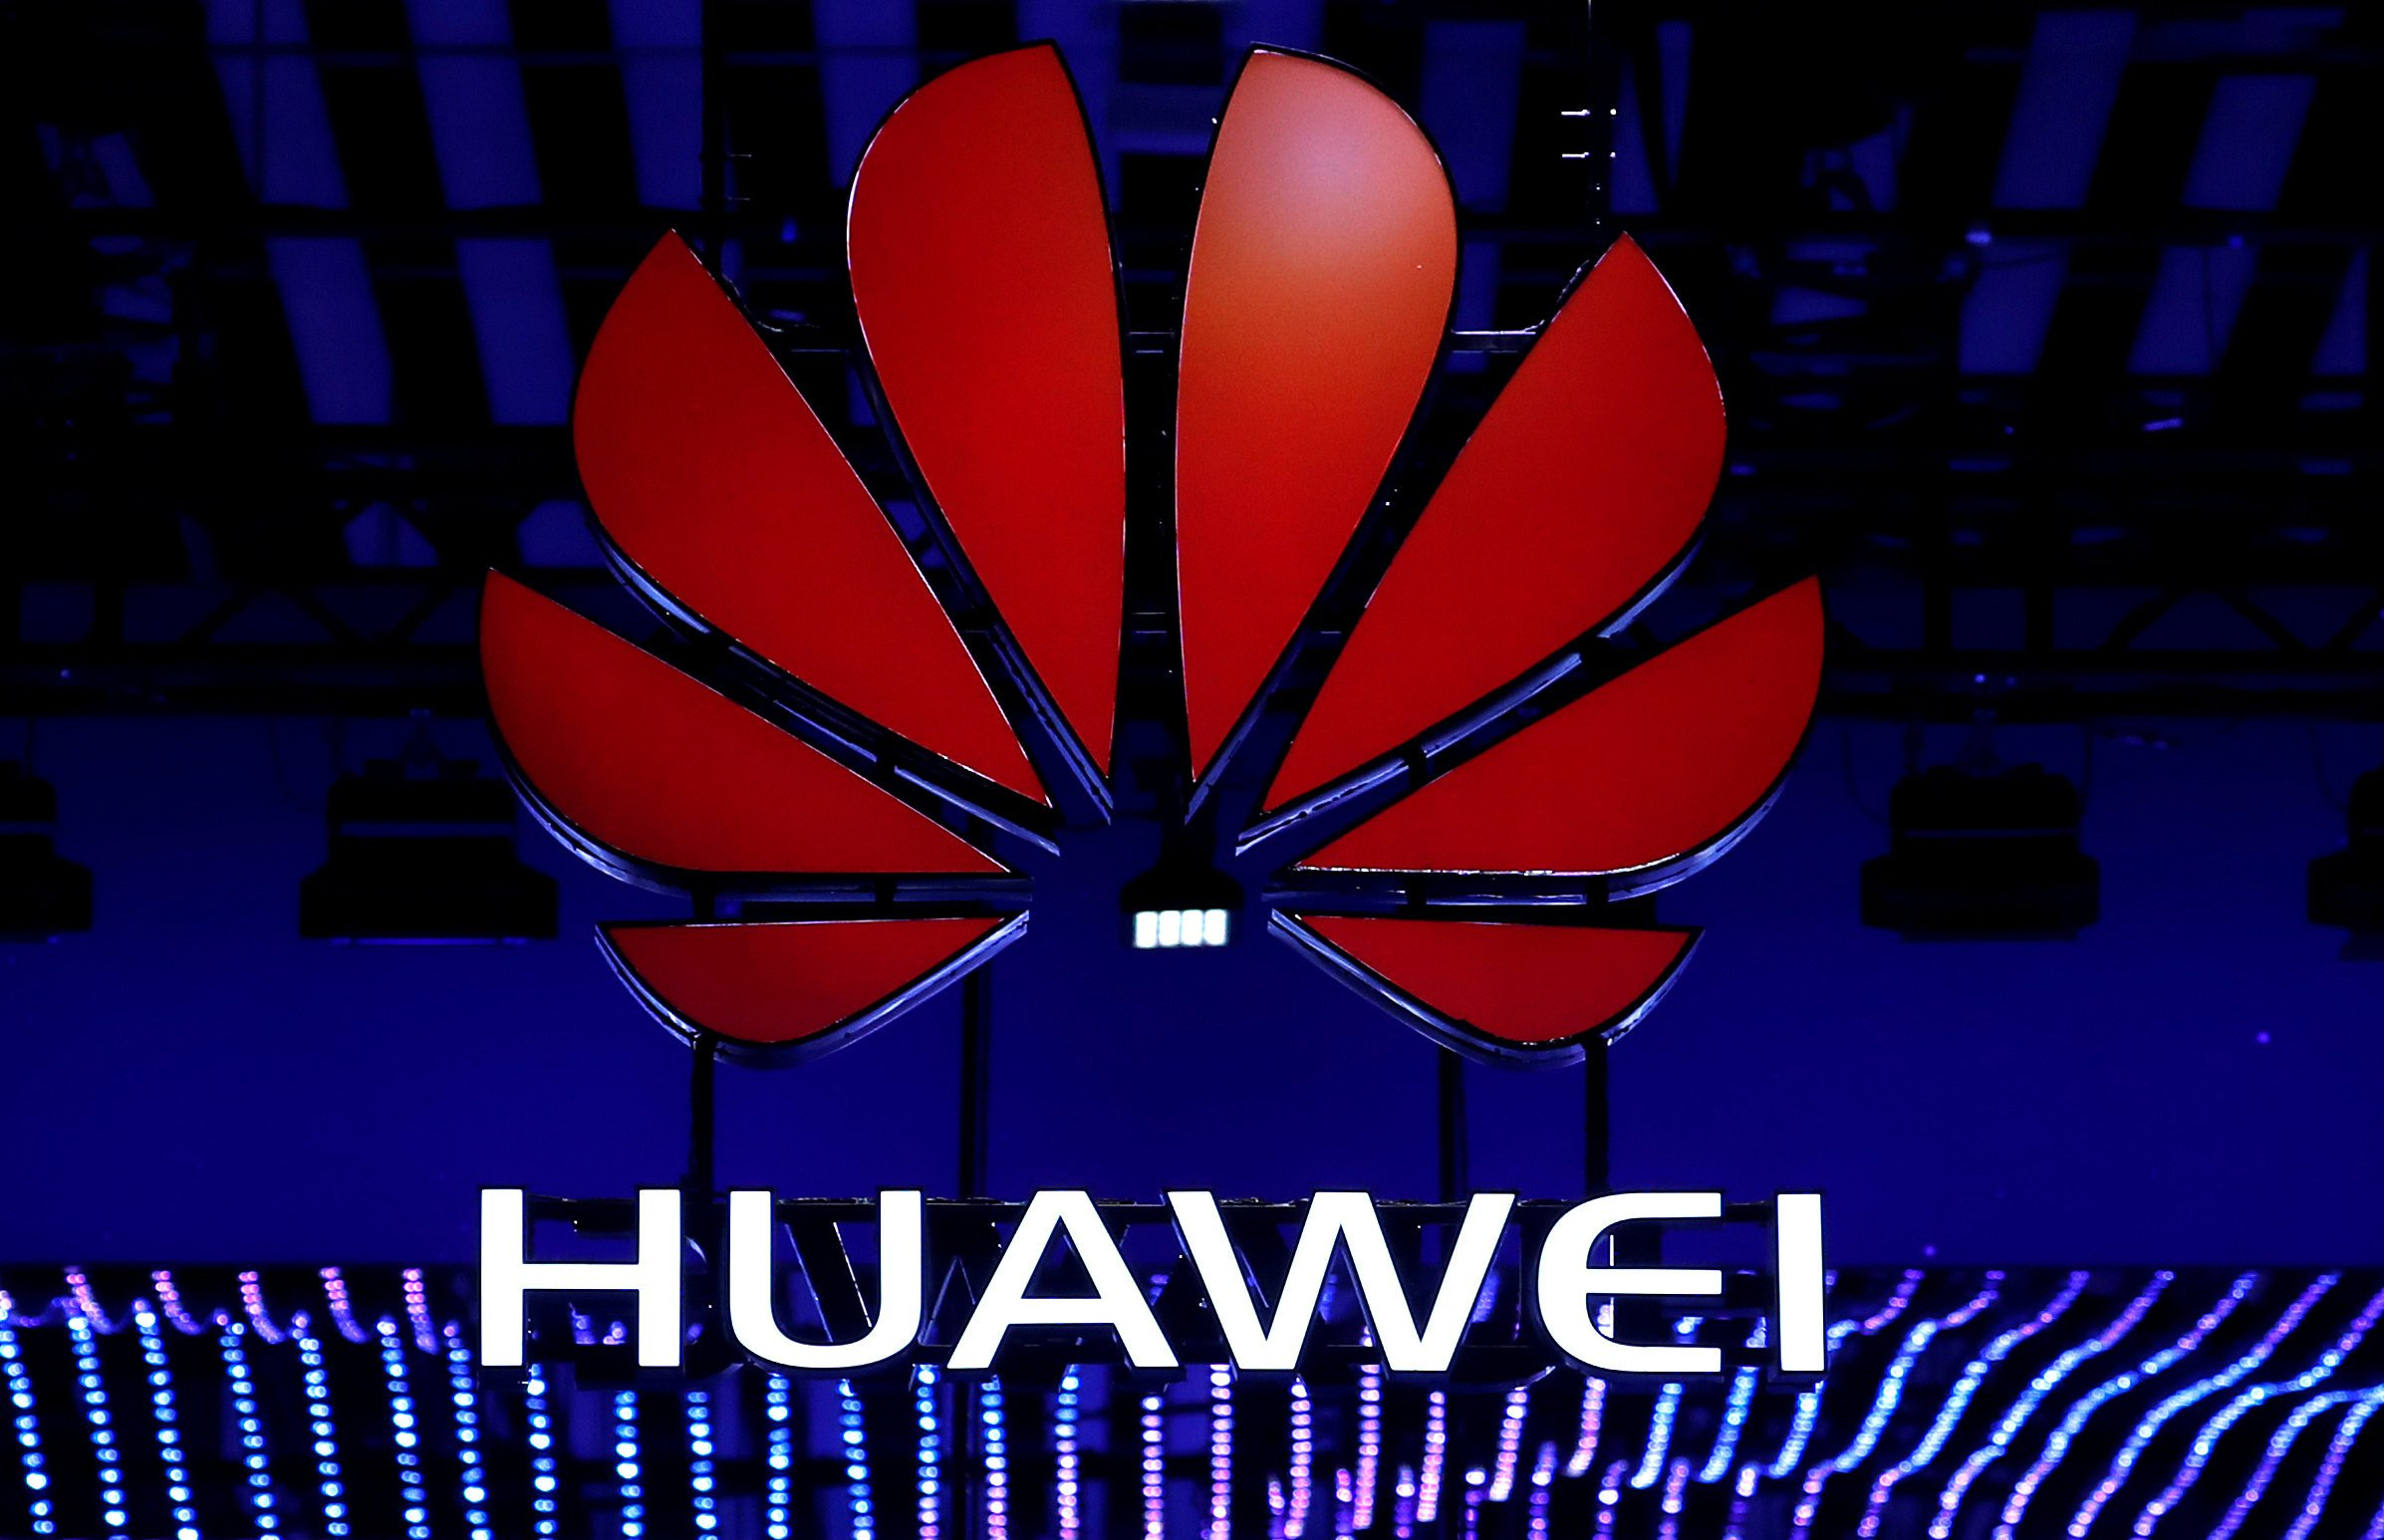 Huawei spying allegations: What you need to know about the Chinese tech giant